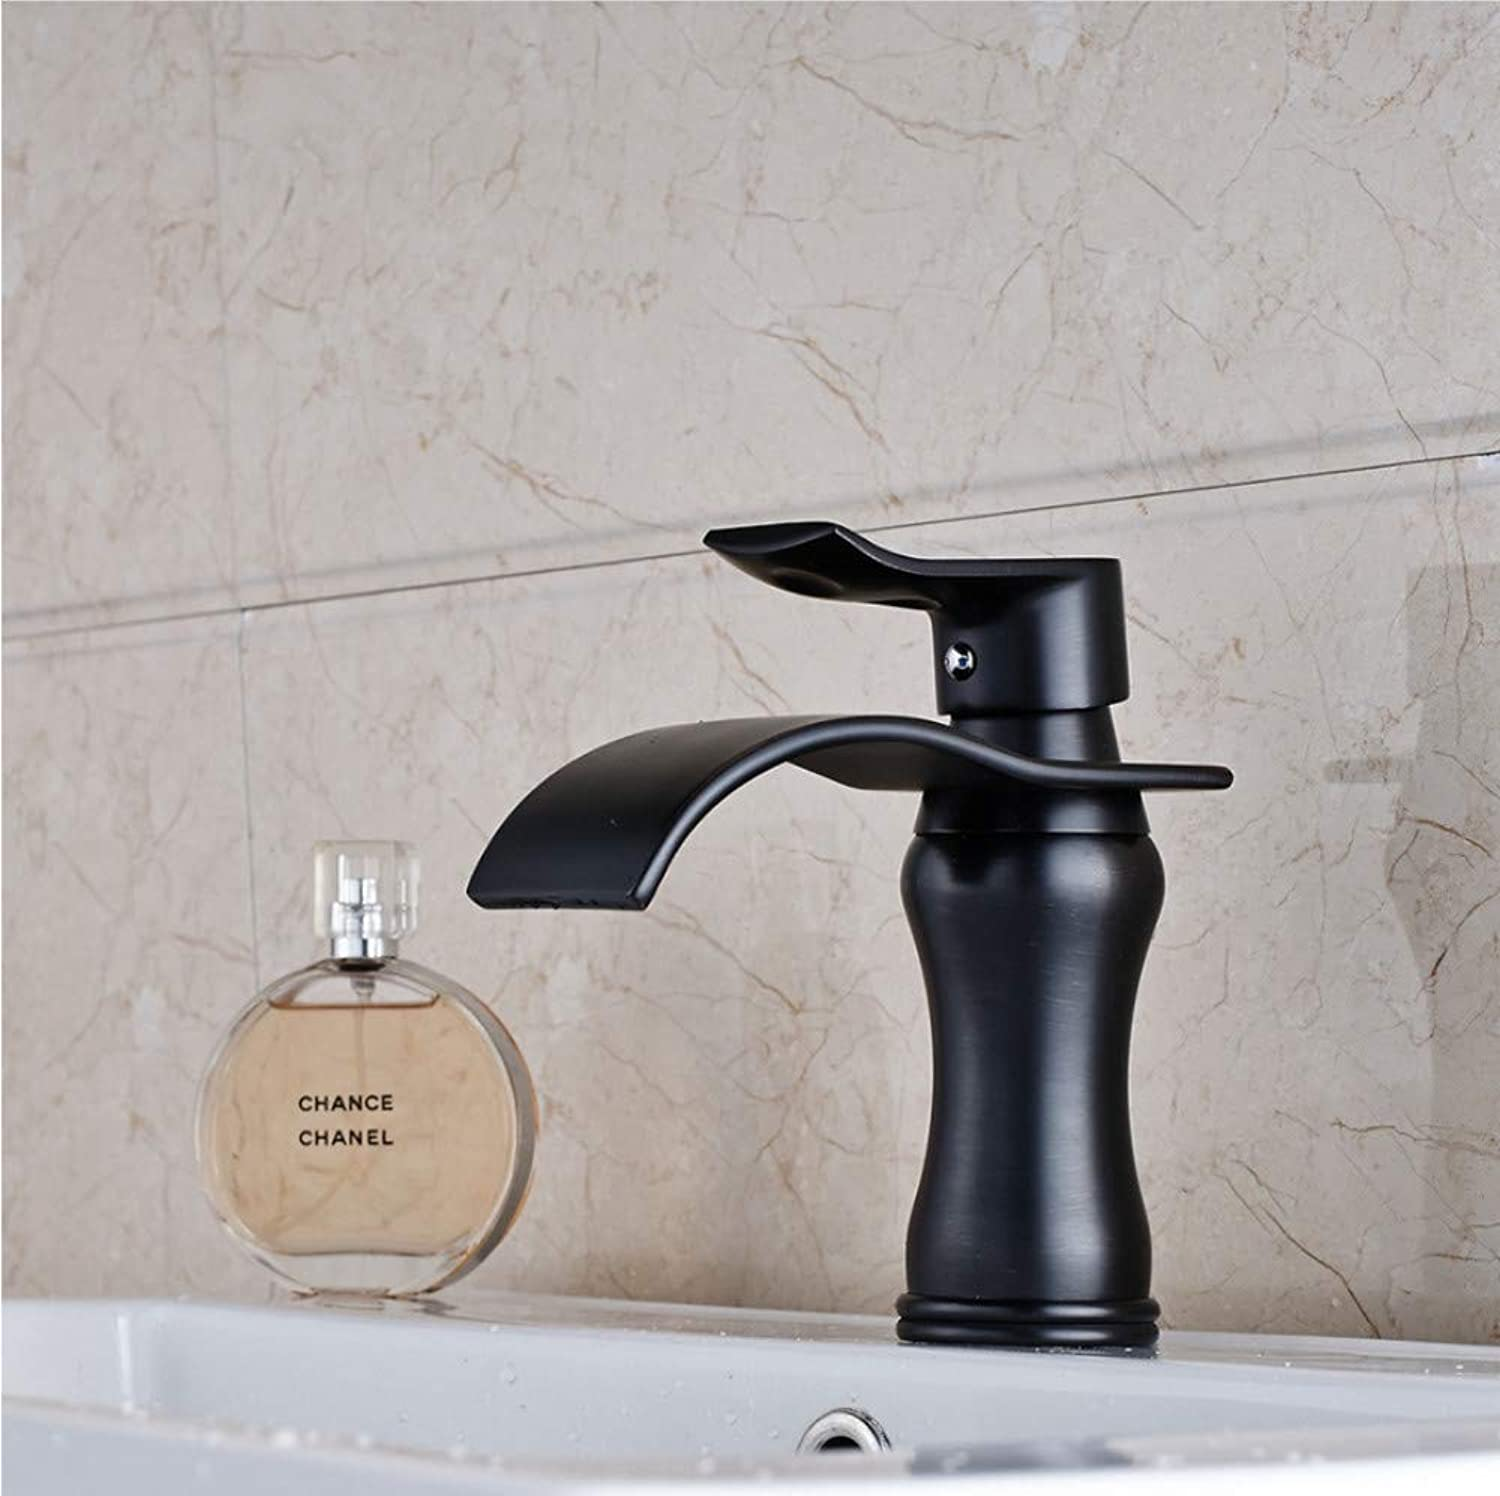 Knncch Oil Rubbed Bronze Waterfall Bathroom Basin Faucet Single Handle Hole Mixer Tap